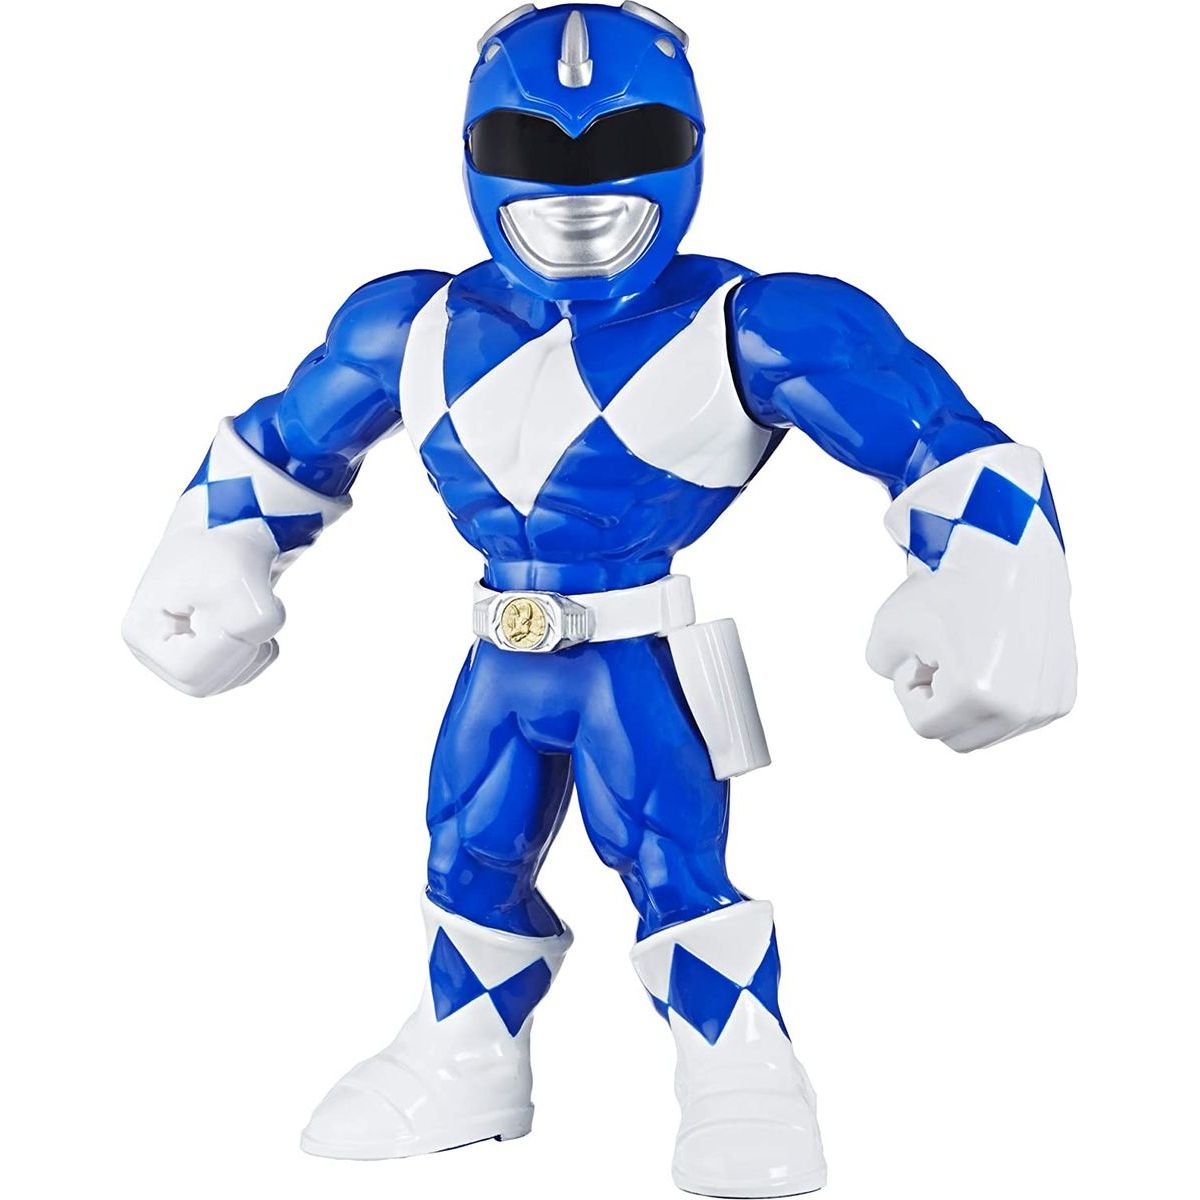 Hasbro Marvel Playskool 25 cm figurky Mega Mighties Blue Ranger